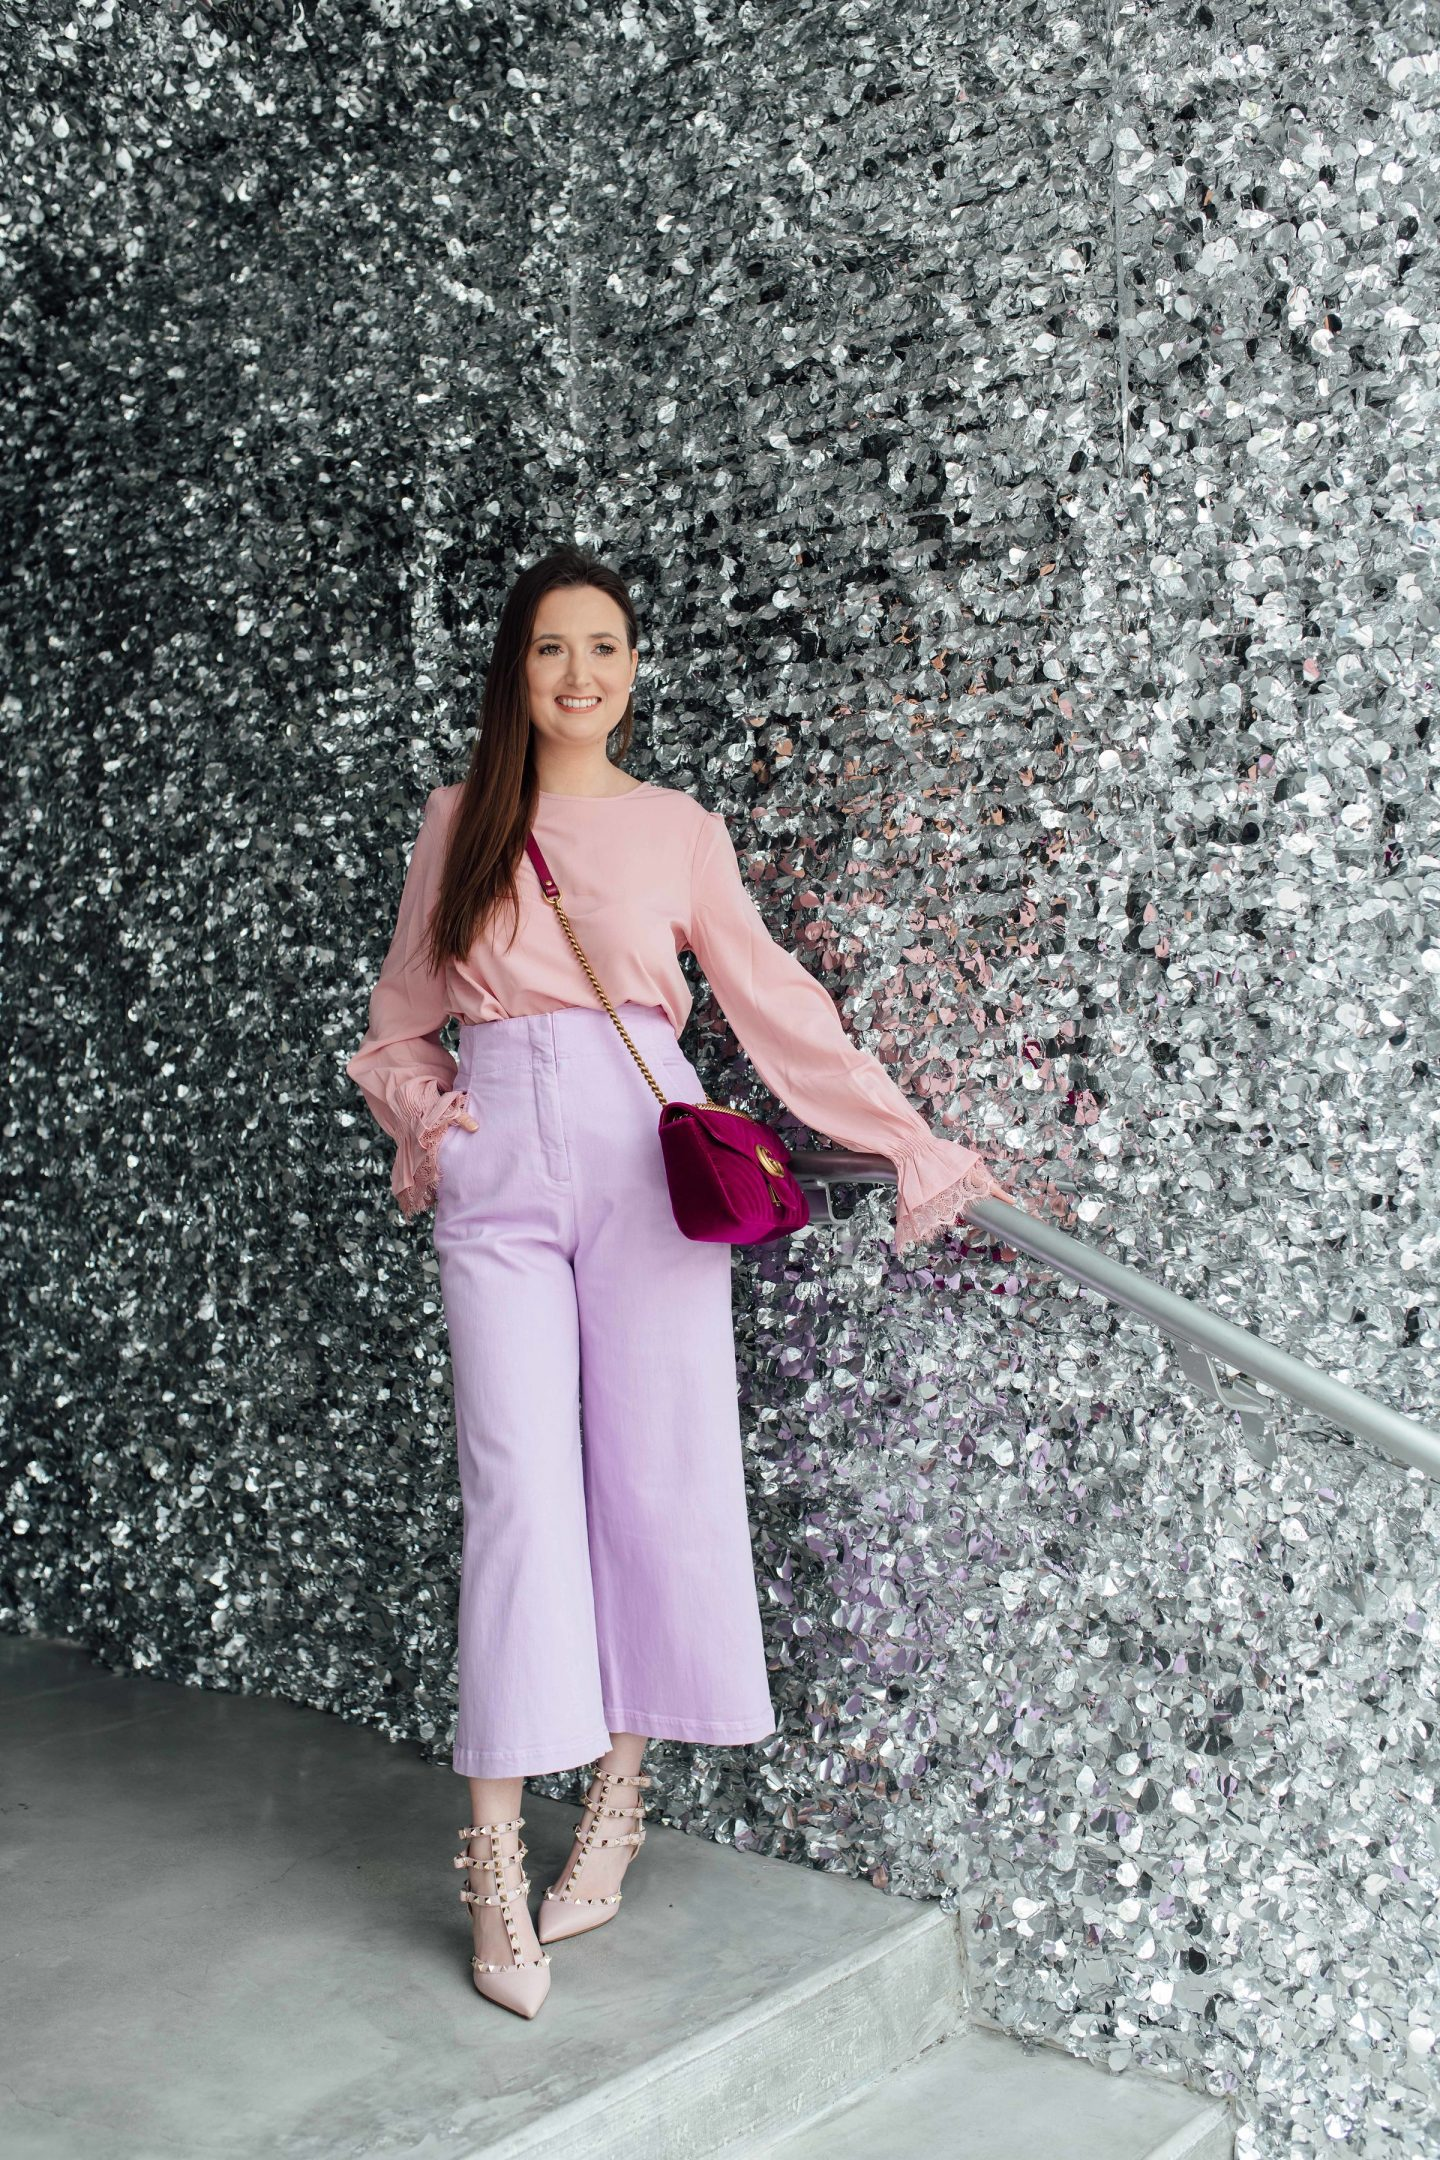 5 SIGNS YOU NEED GLAMOUR IN YOUR LIFE, Asos pink top, ASOS, Tibi lavender pants, lavender 2018, Valentino rockstuds kitten heels, Gucci Marmont small velvet